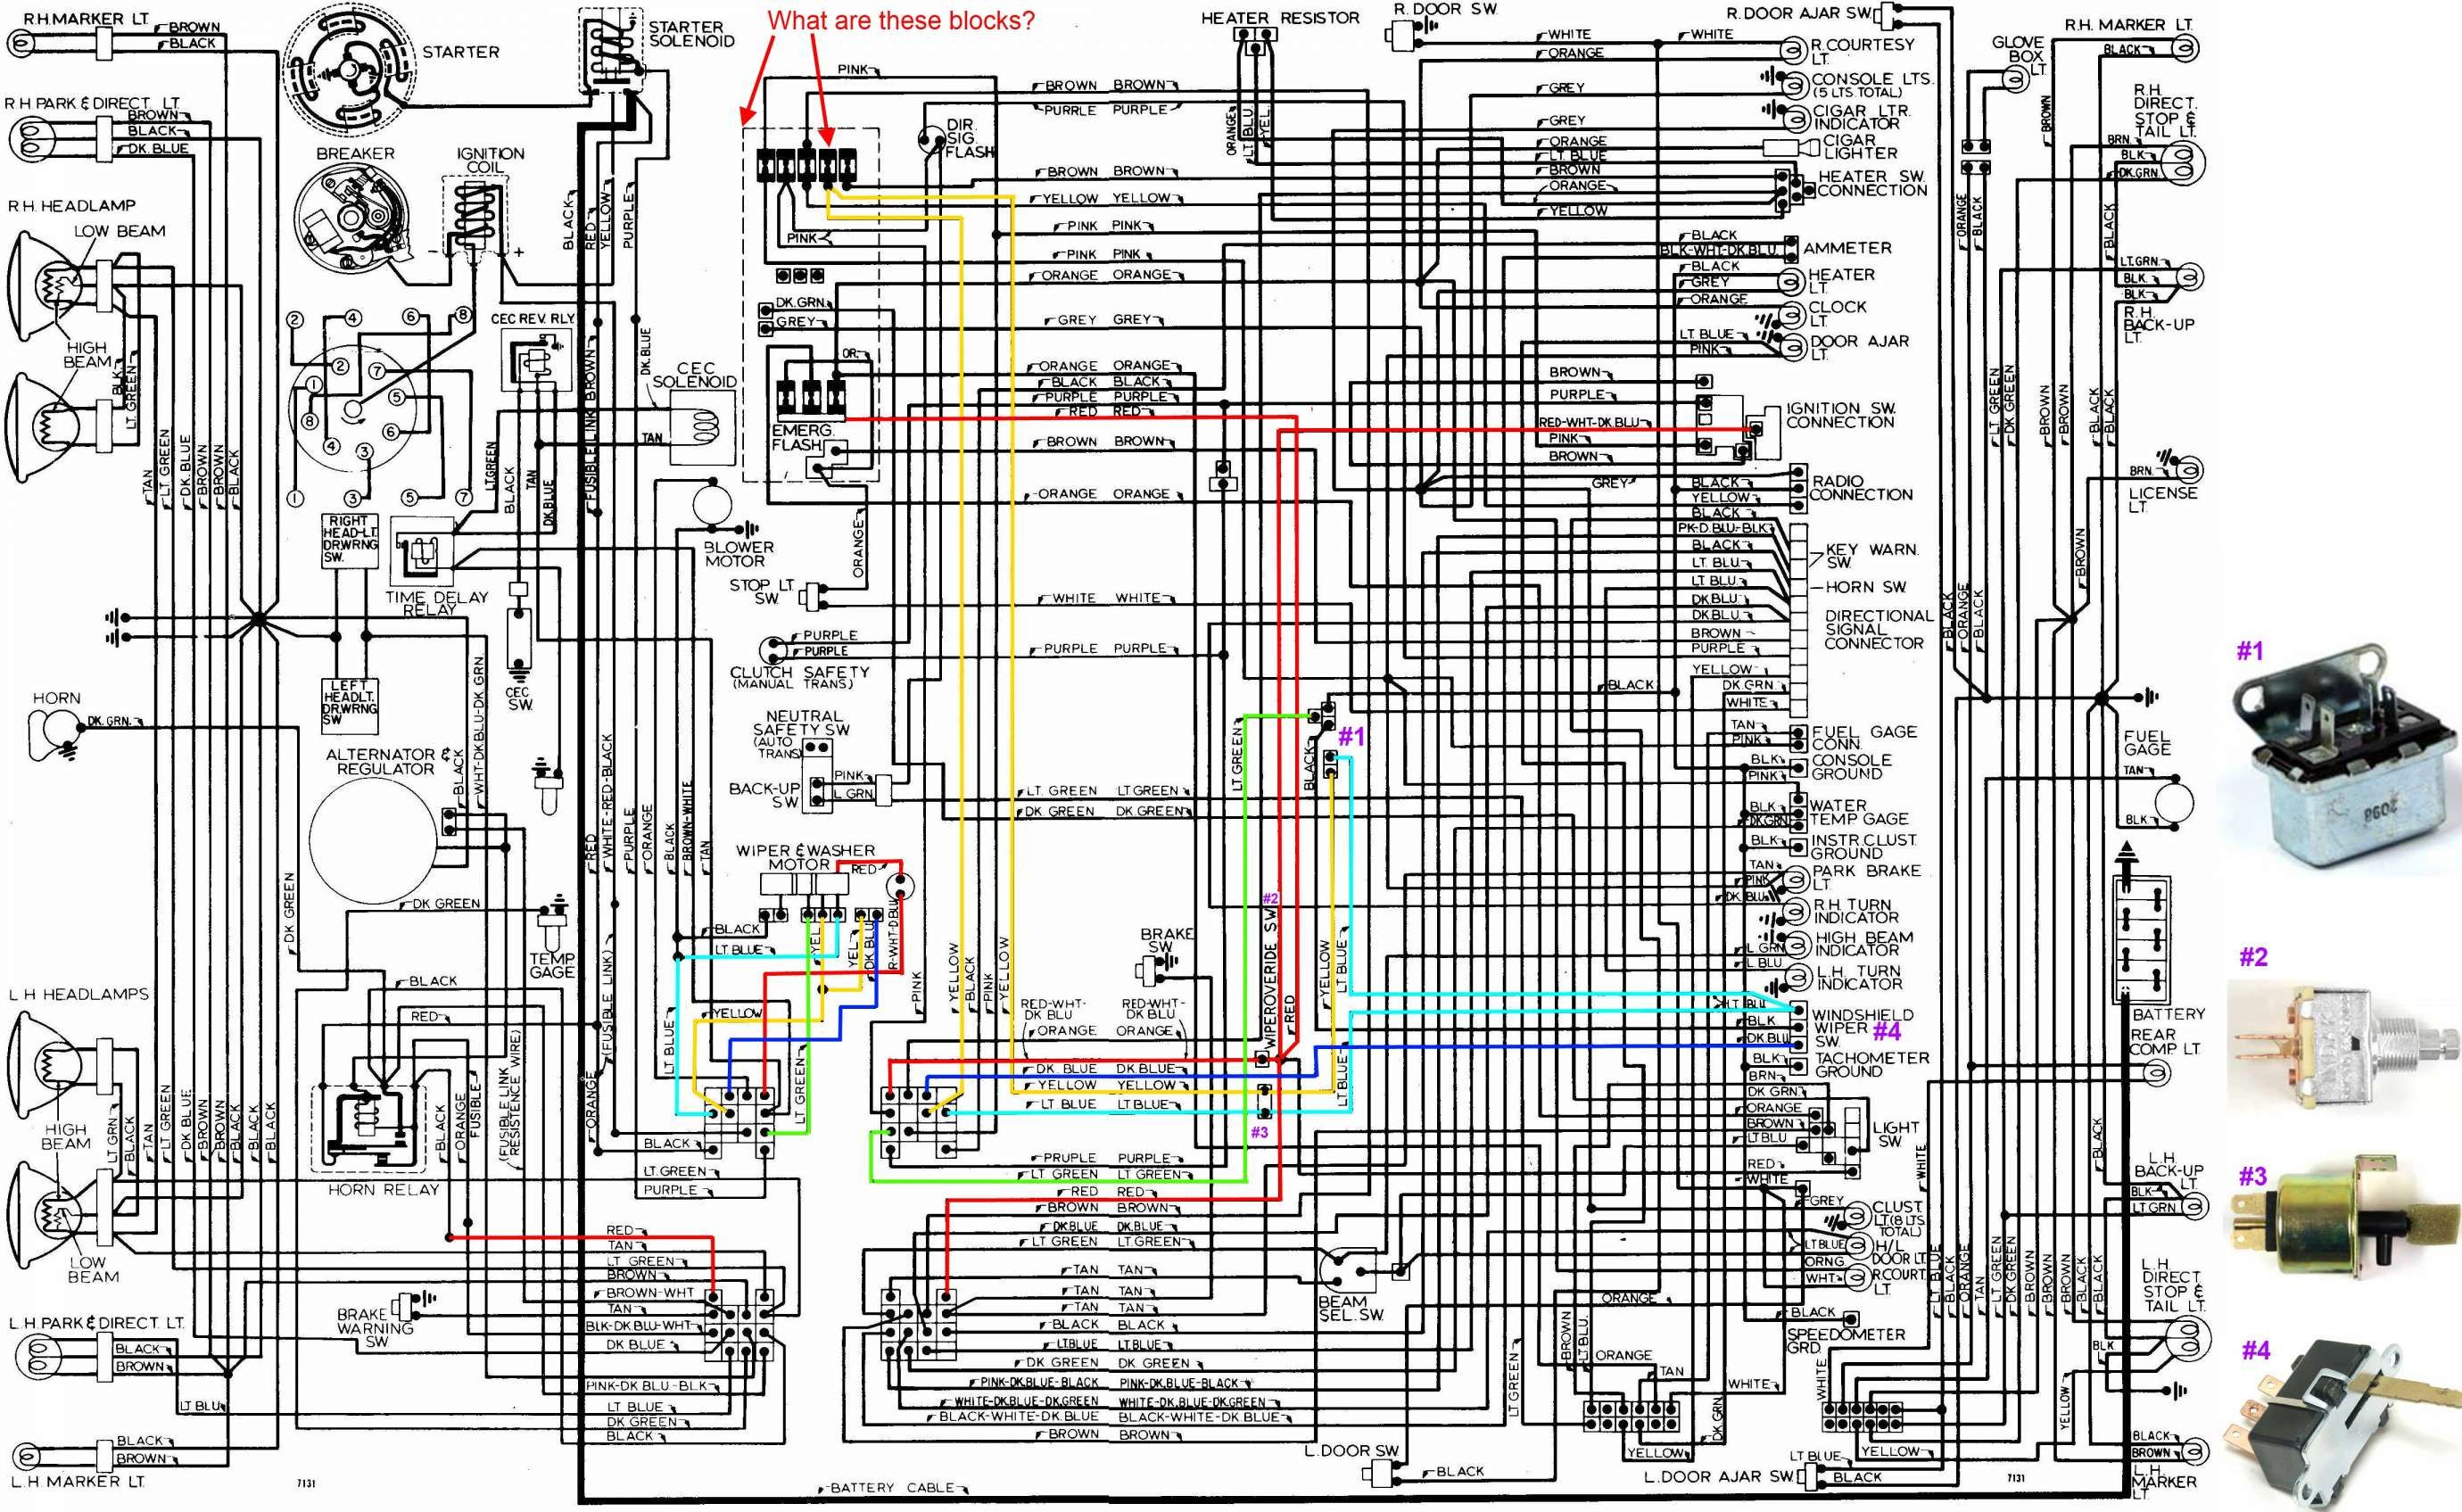 12 72 Chevelle Engine Wiring Harness Diagram Engine Diagram Wiringg Net 72 Chevelle Chevelle Diagram